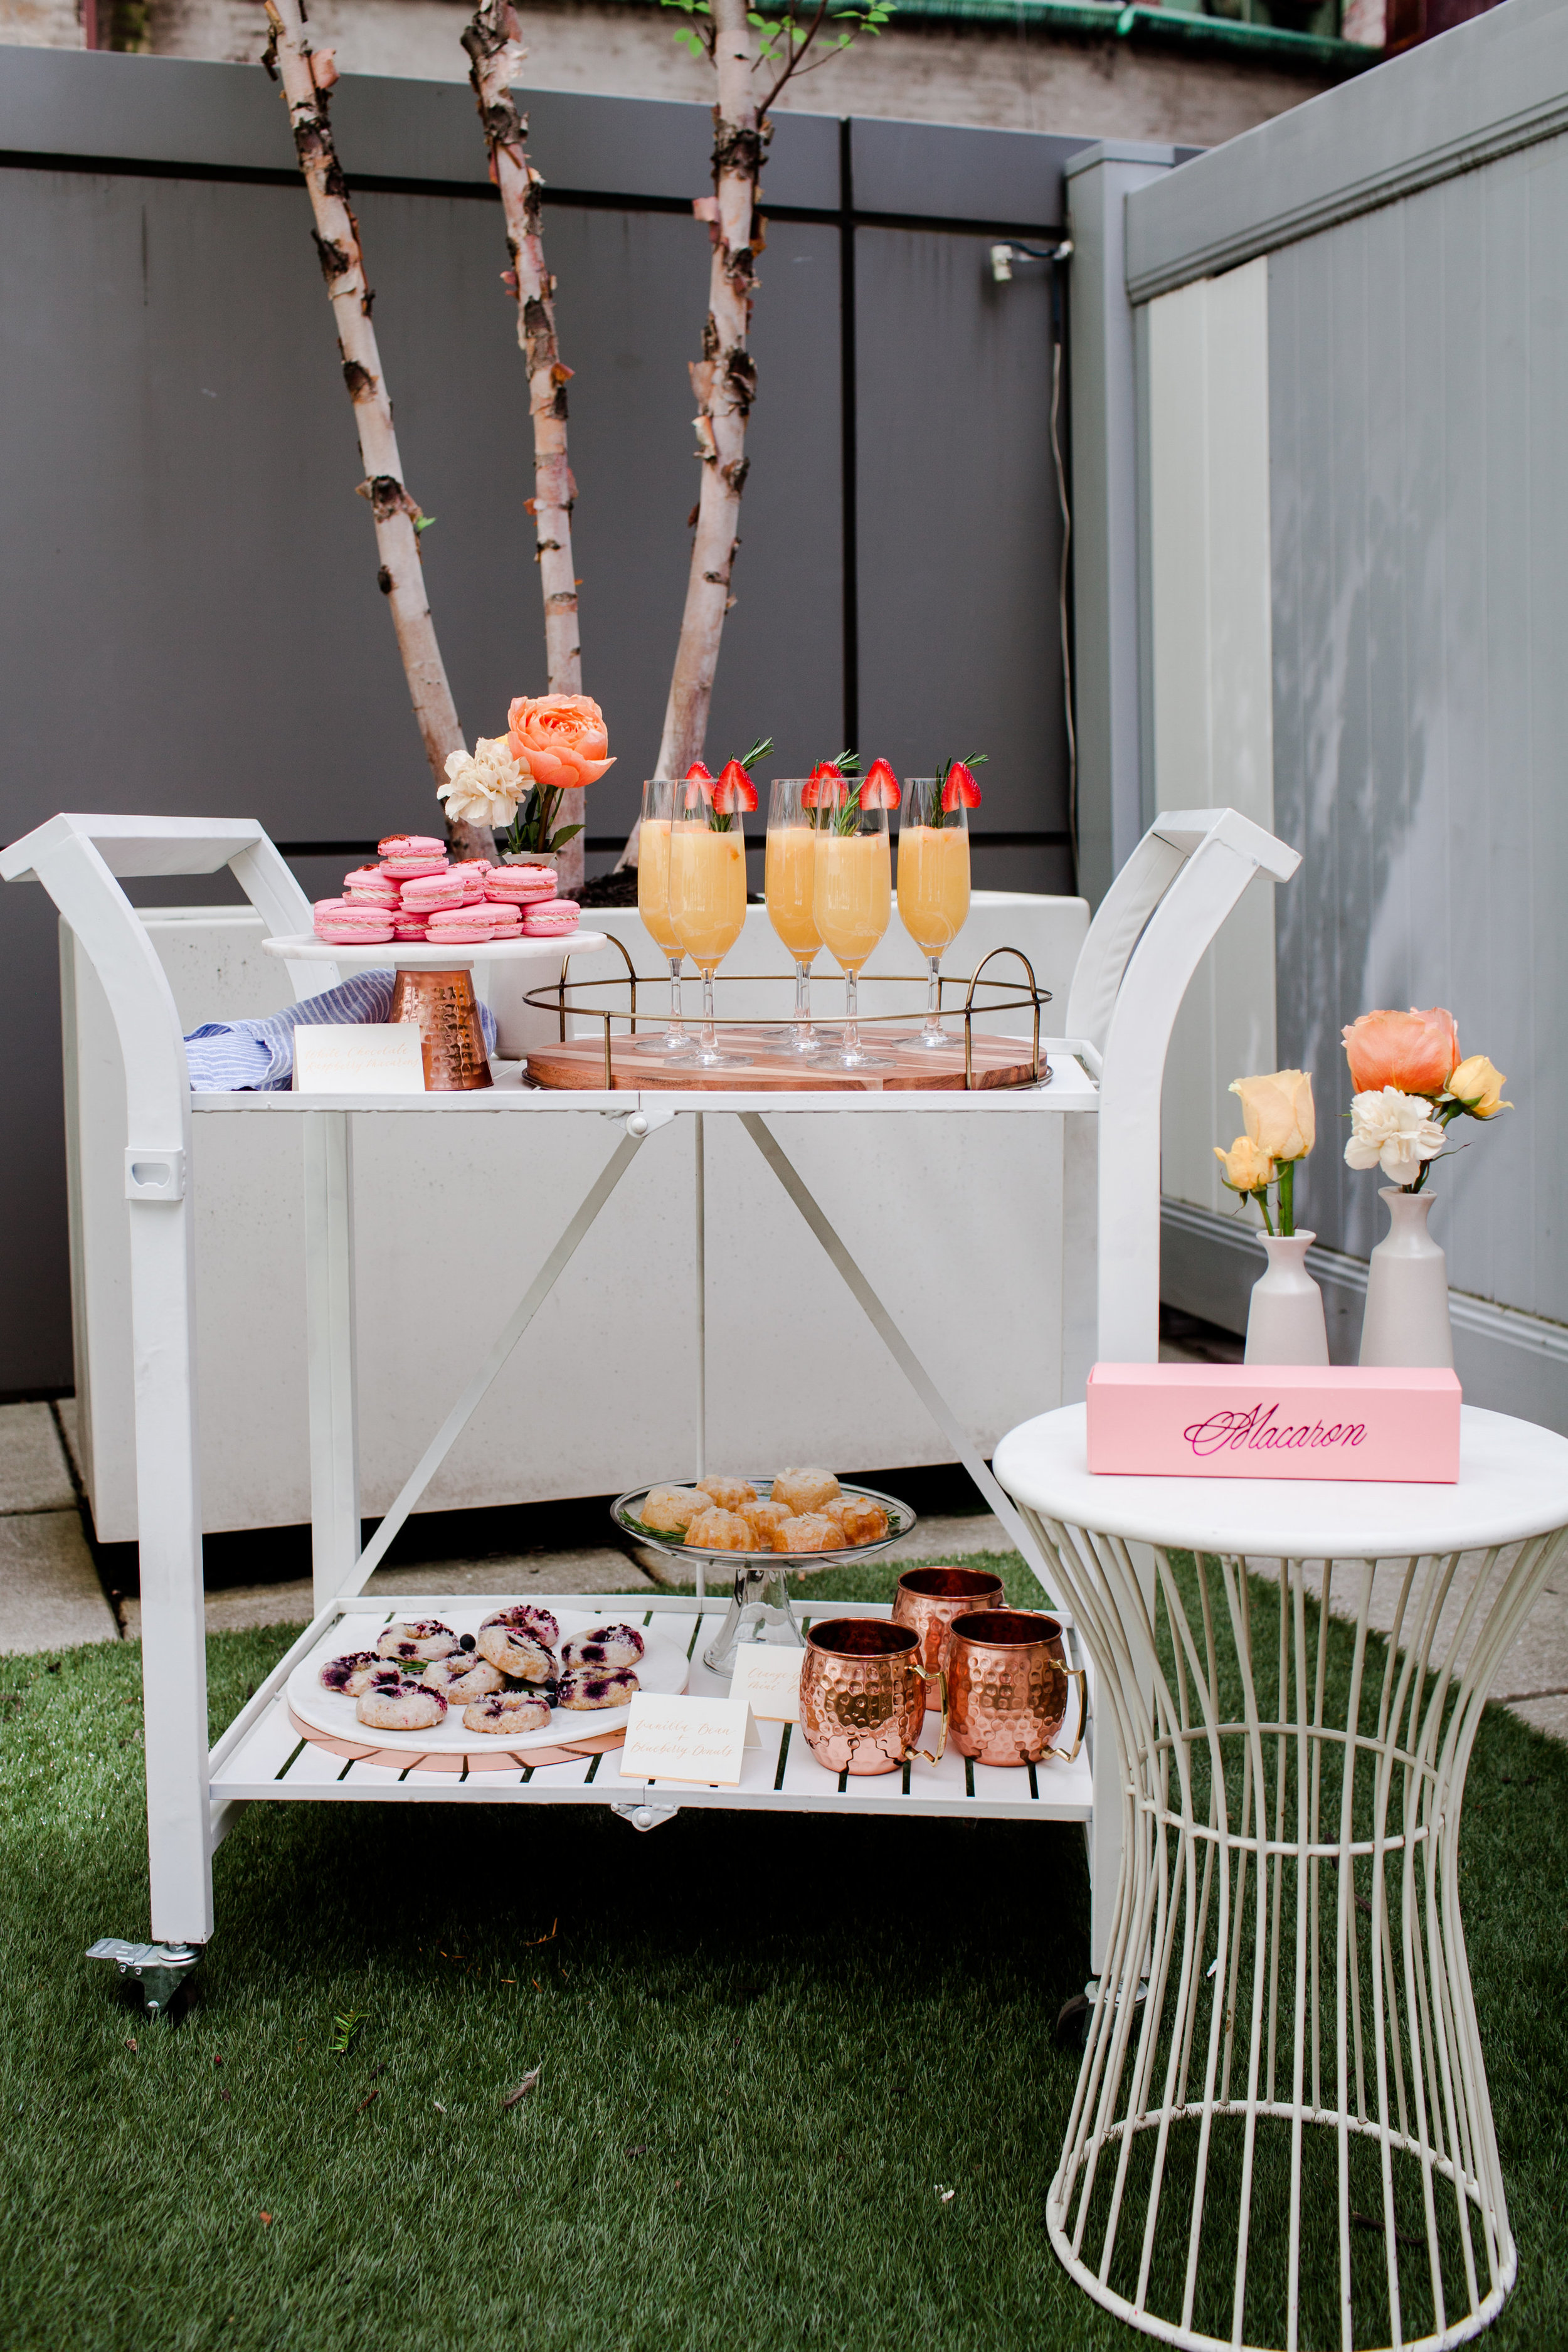 outdoor rooftop brunch decor with bright flowers and desserts